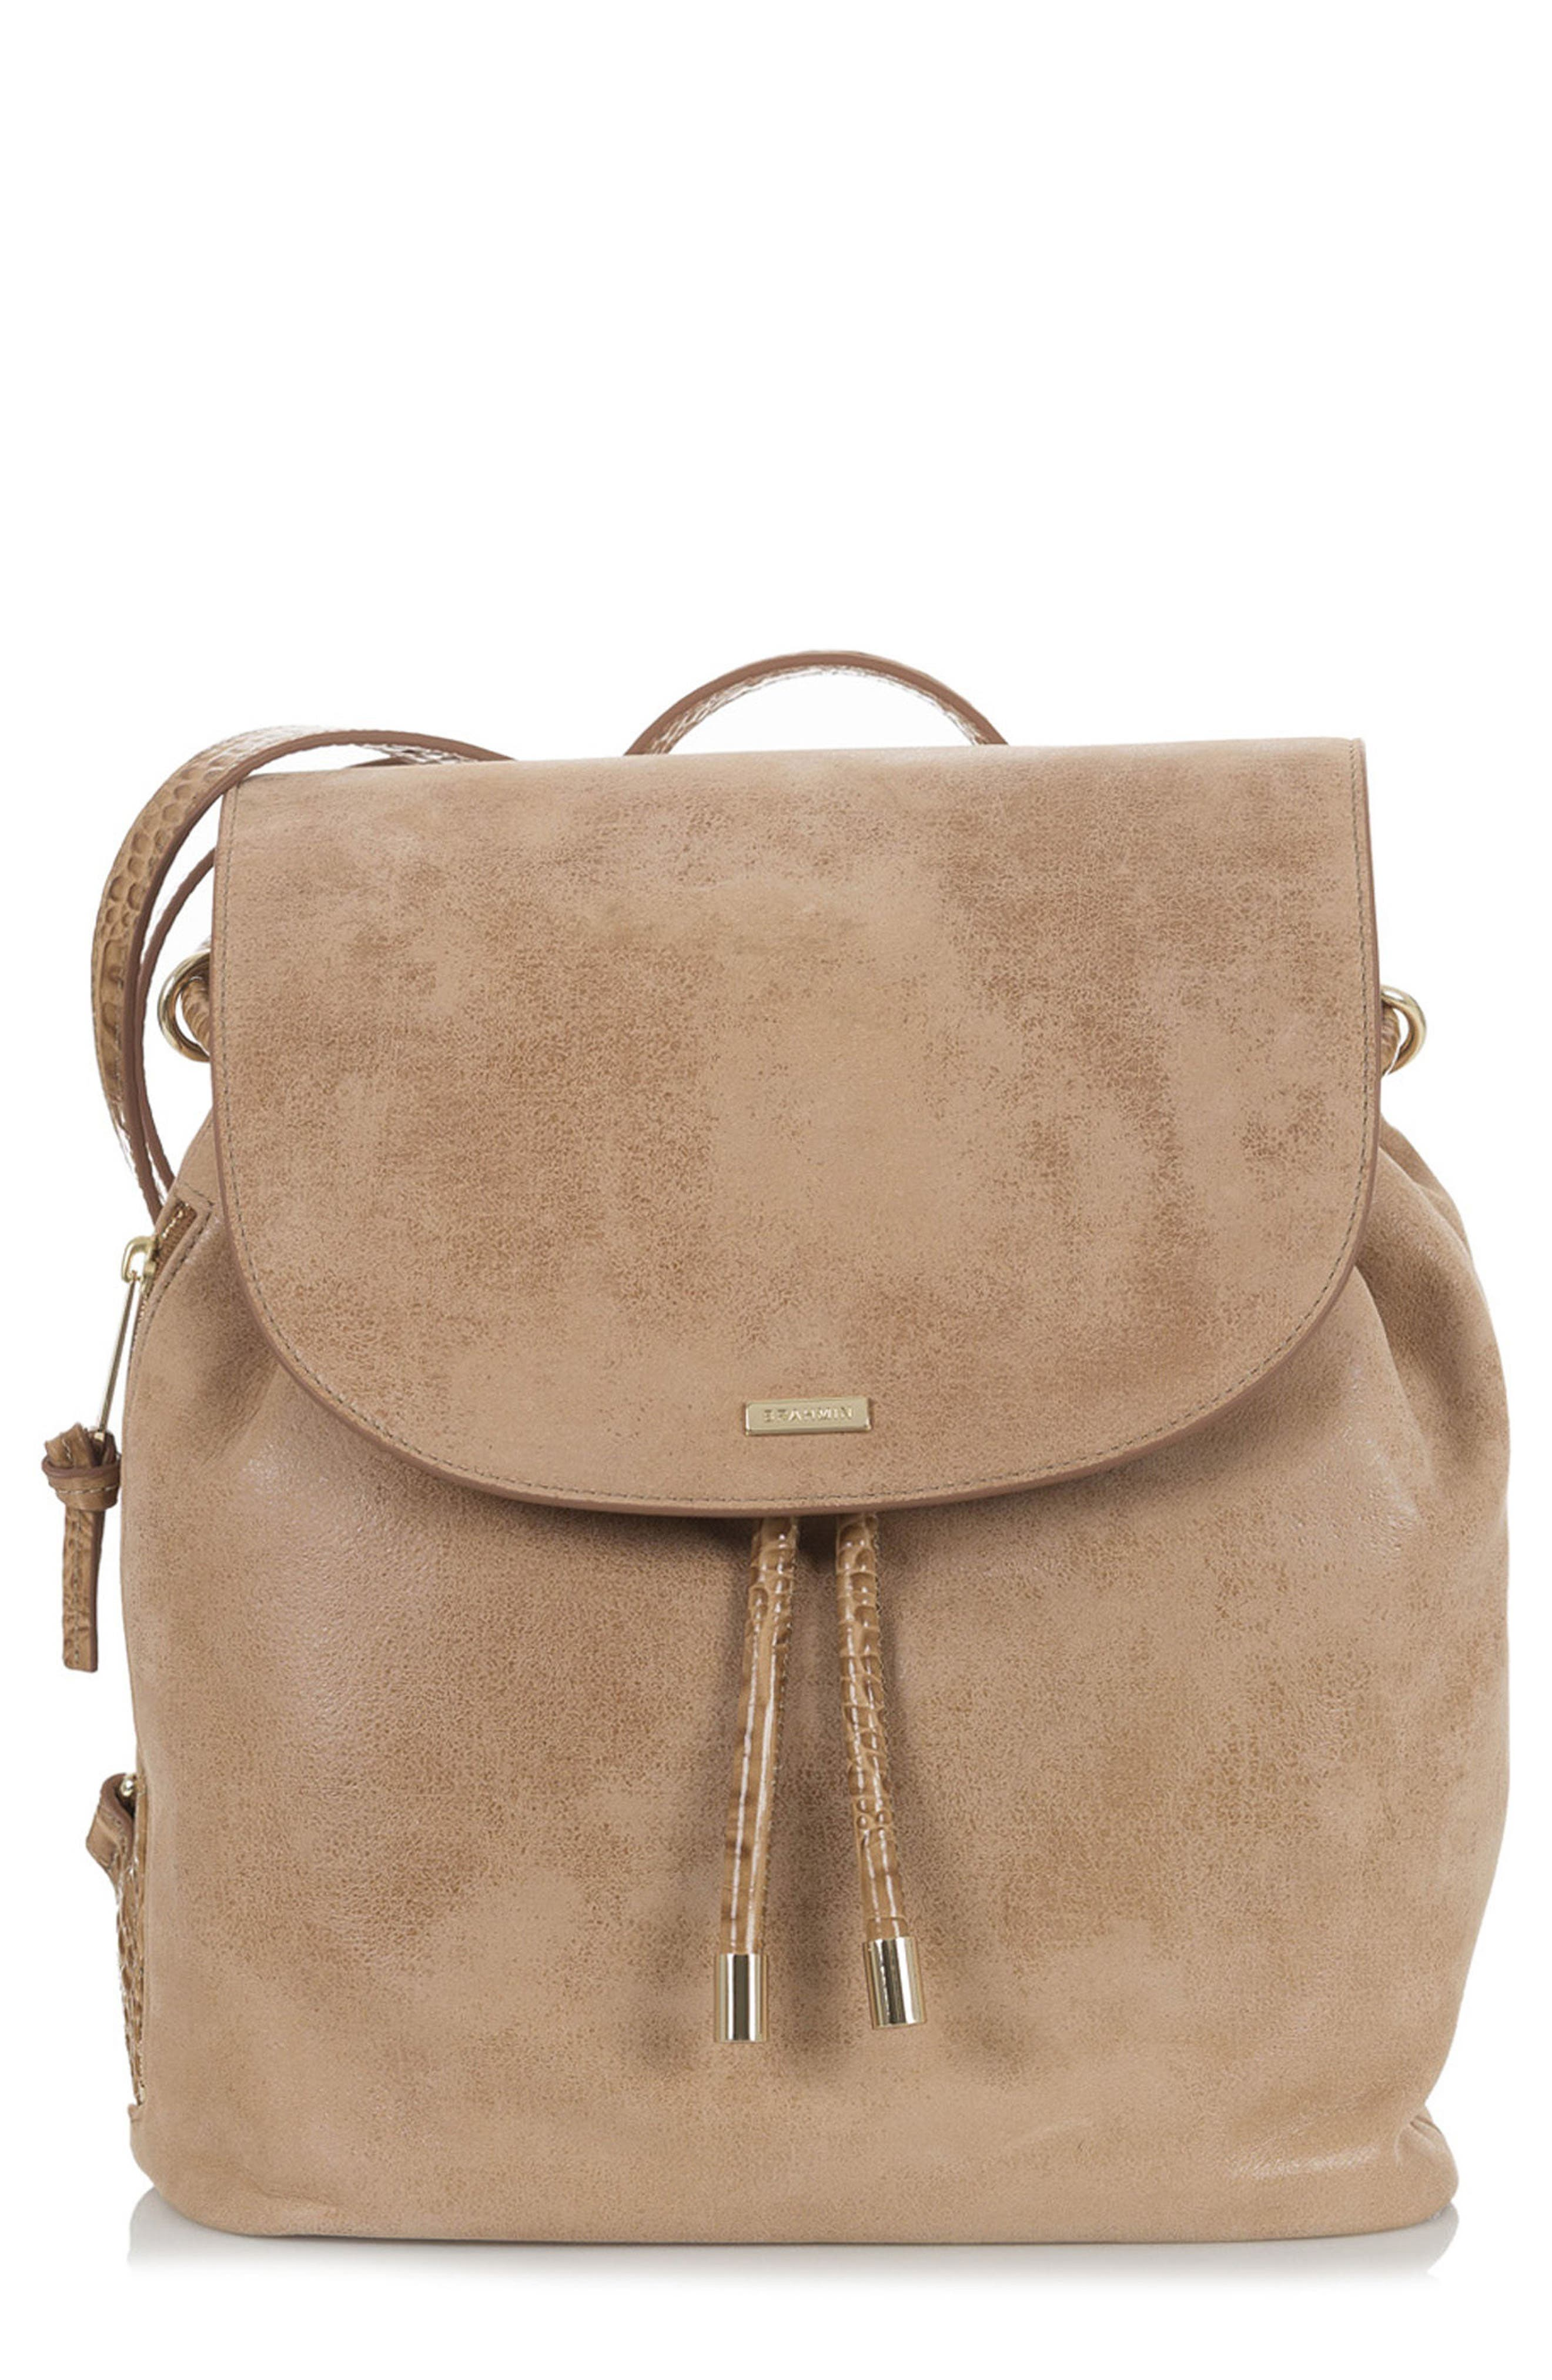 Josie Leather Backpack,                         Main,                         color, 200